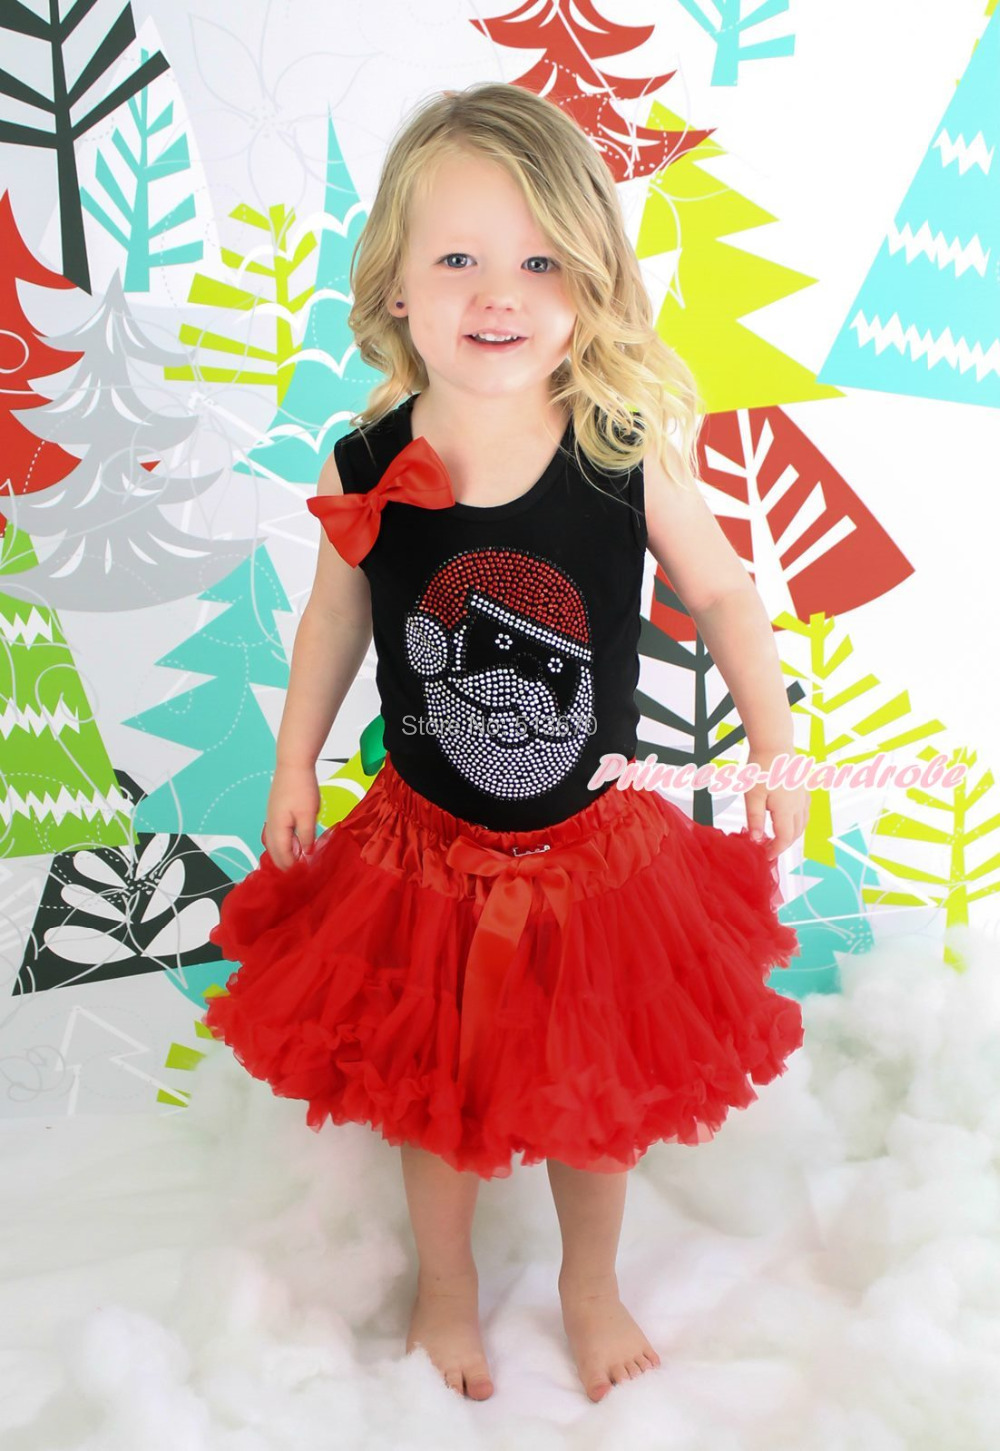 XMAS Rhinestone Santa Claus Print Black Top Red Skirt Baby Girl Outfit Set NB-8Y MG1352 my 1st christmas santa claus white top minnie dot petal skirt girls outfit nb 8y